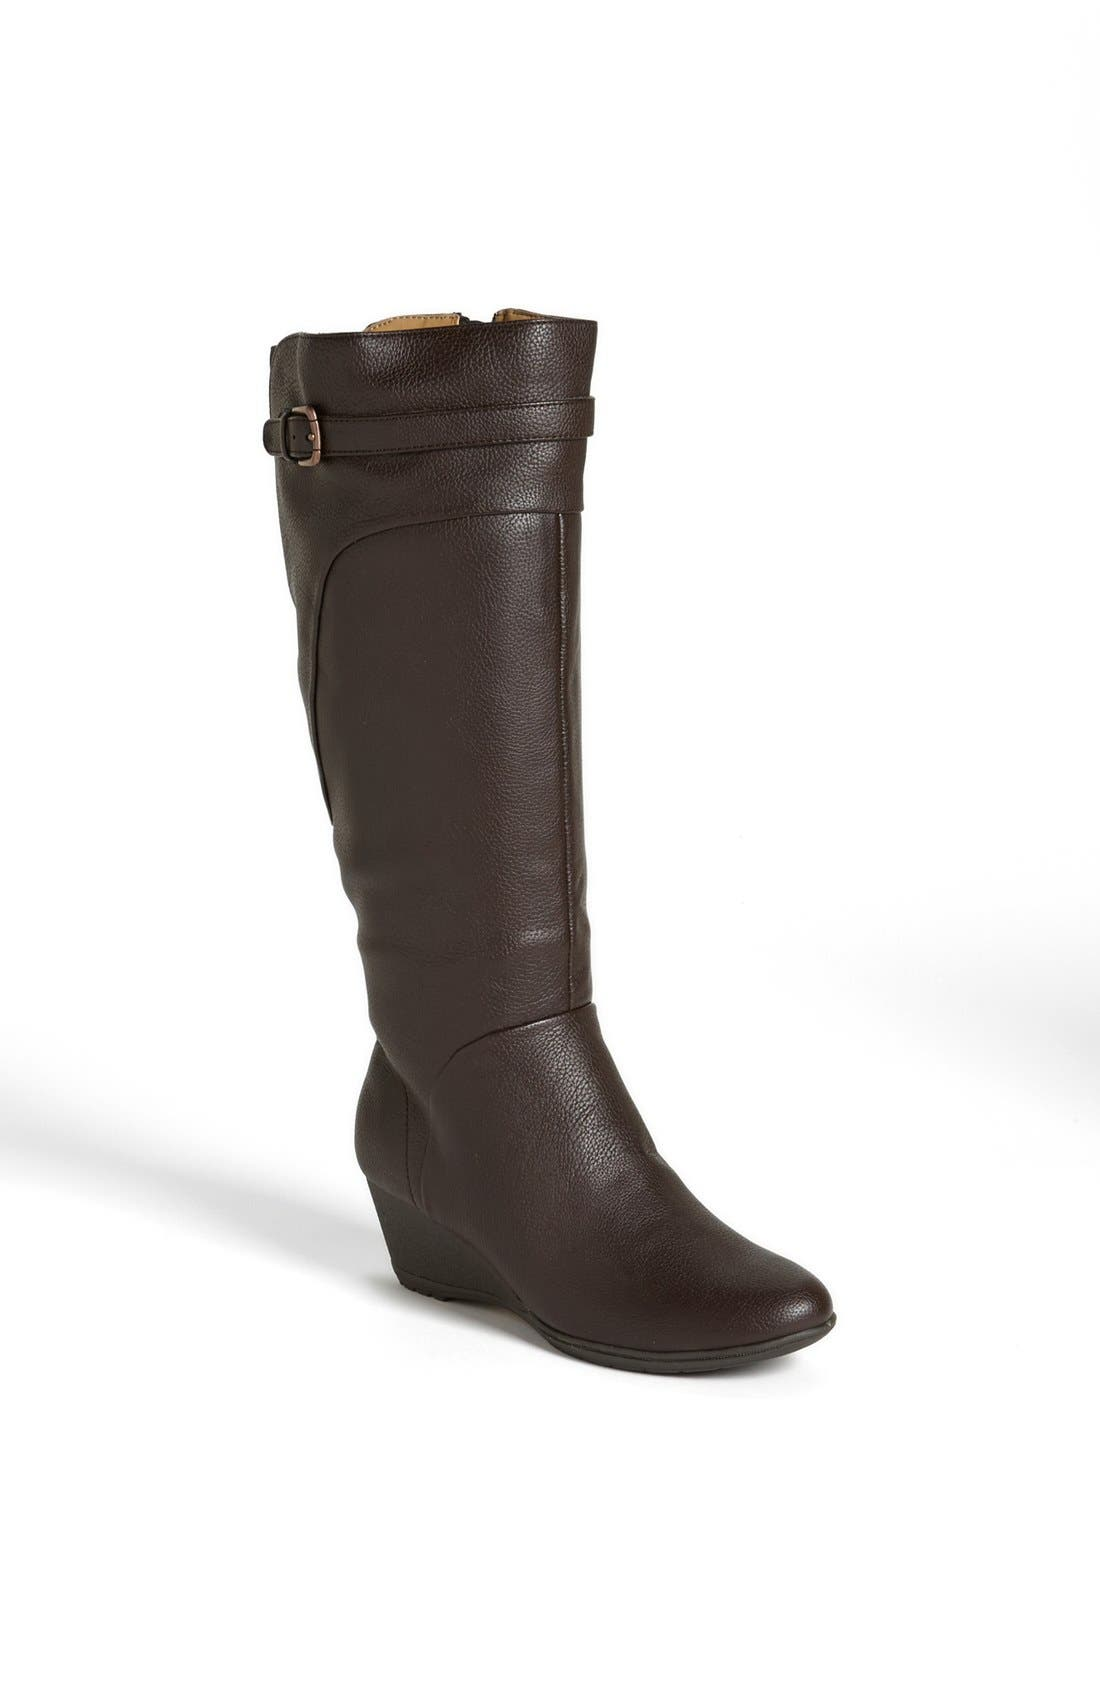 Main Image - Softspots 'Oliva' Boot